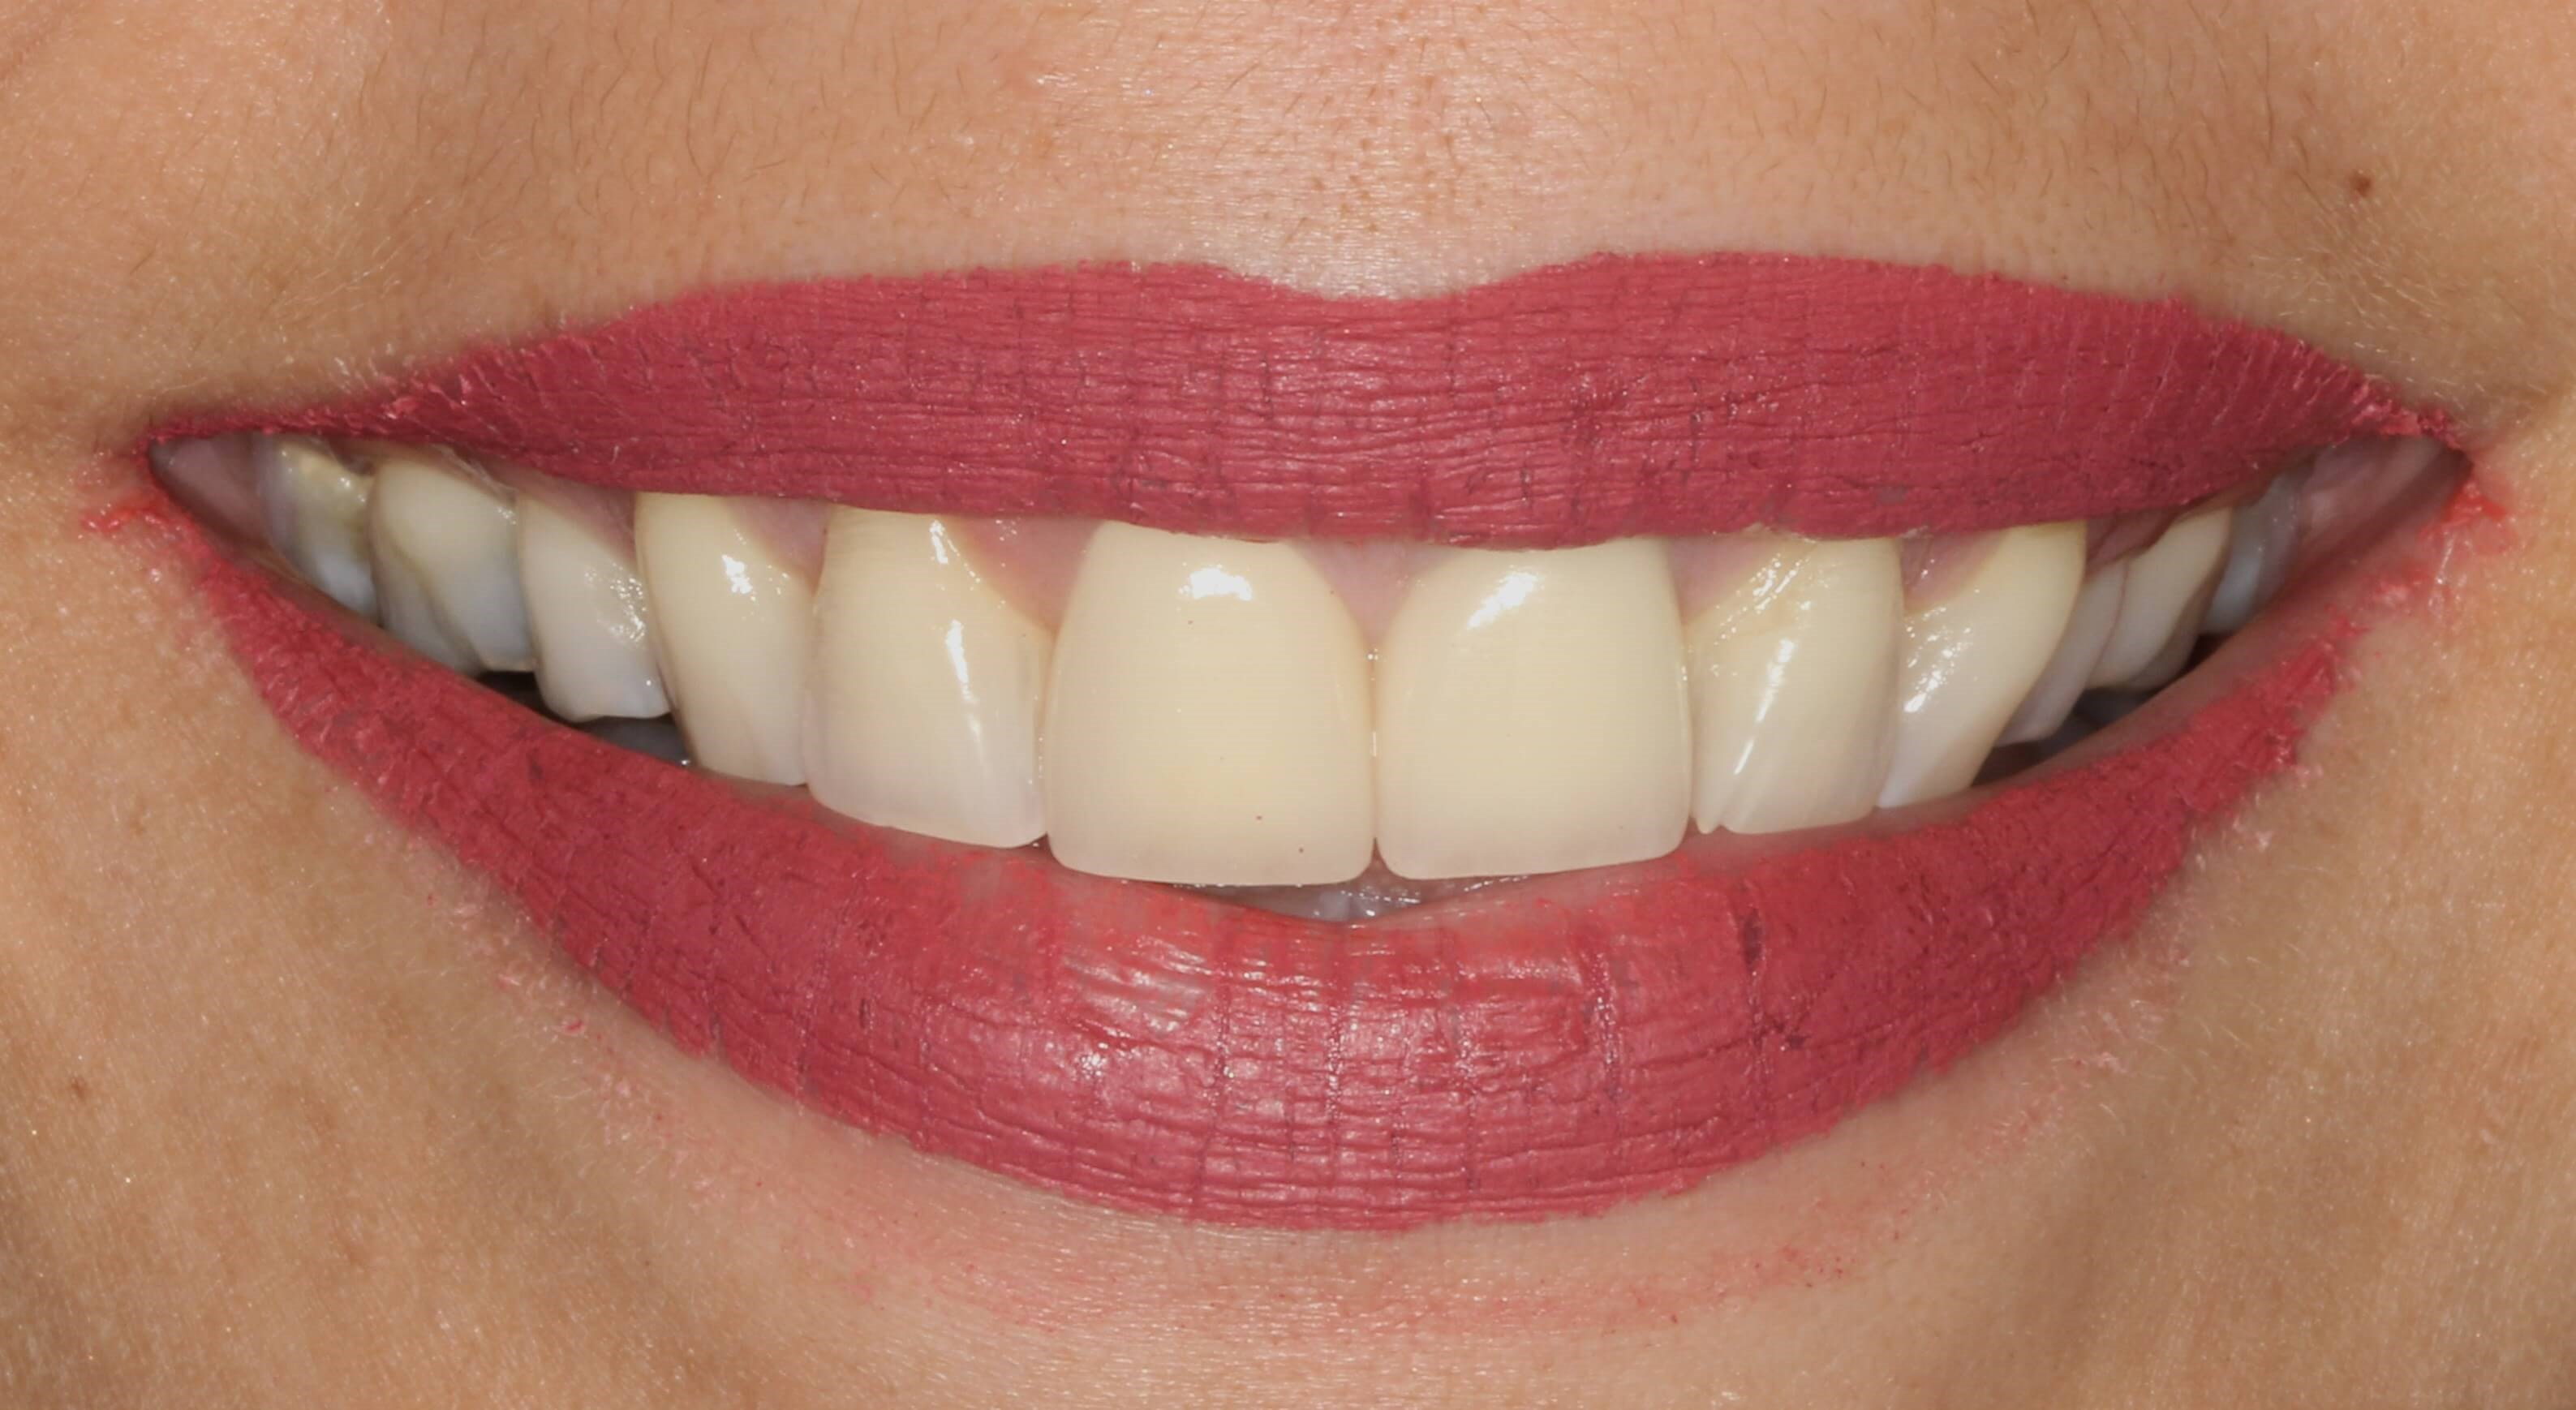 Implants and Porcelain Crowns After